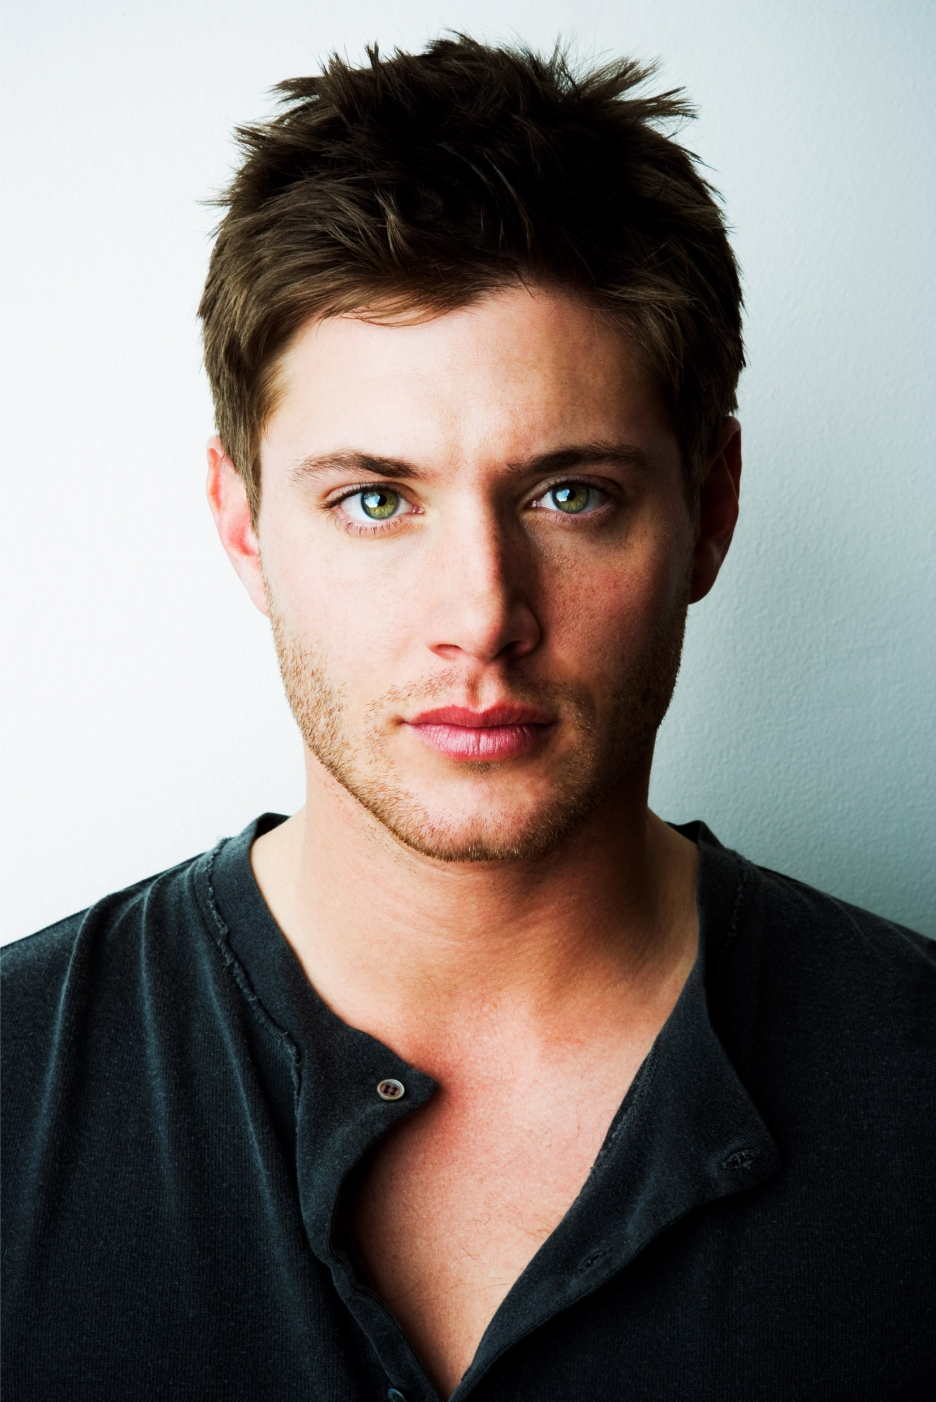 FileJensen Ackles jpg